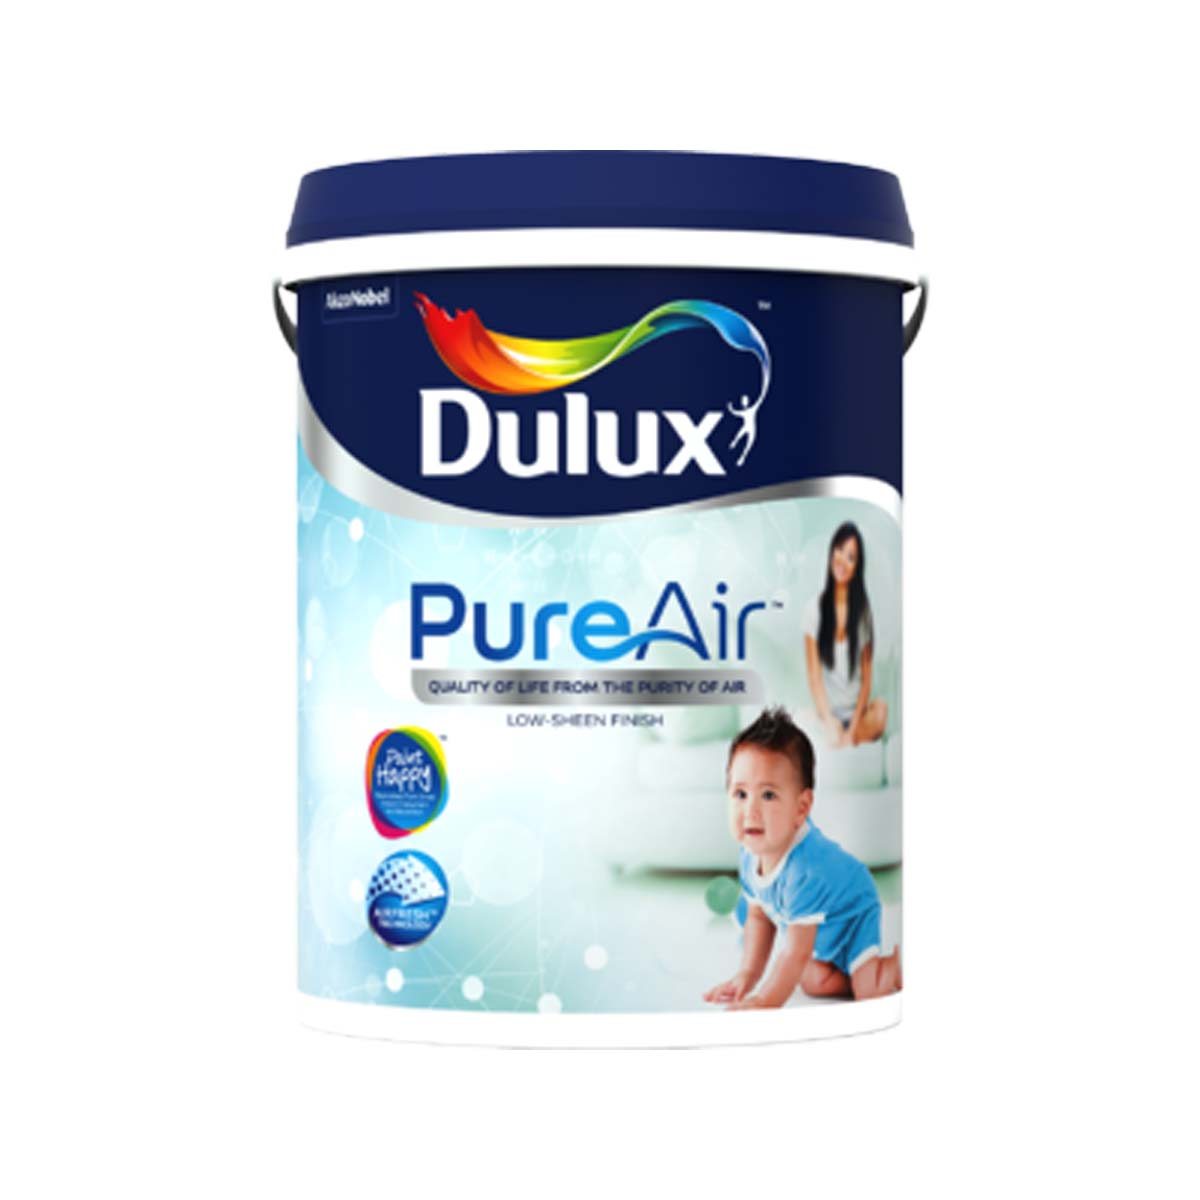 Dulux PureAir (All Popular Colours)